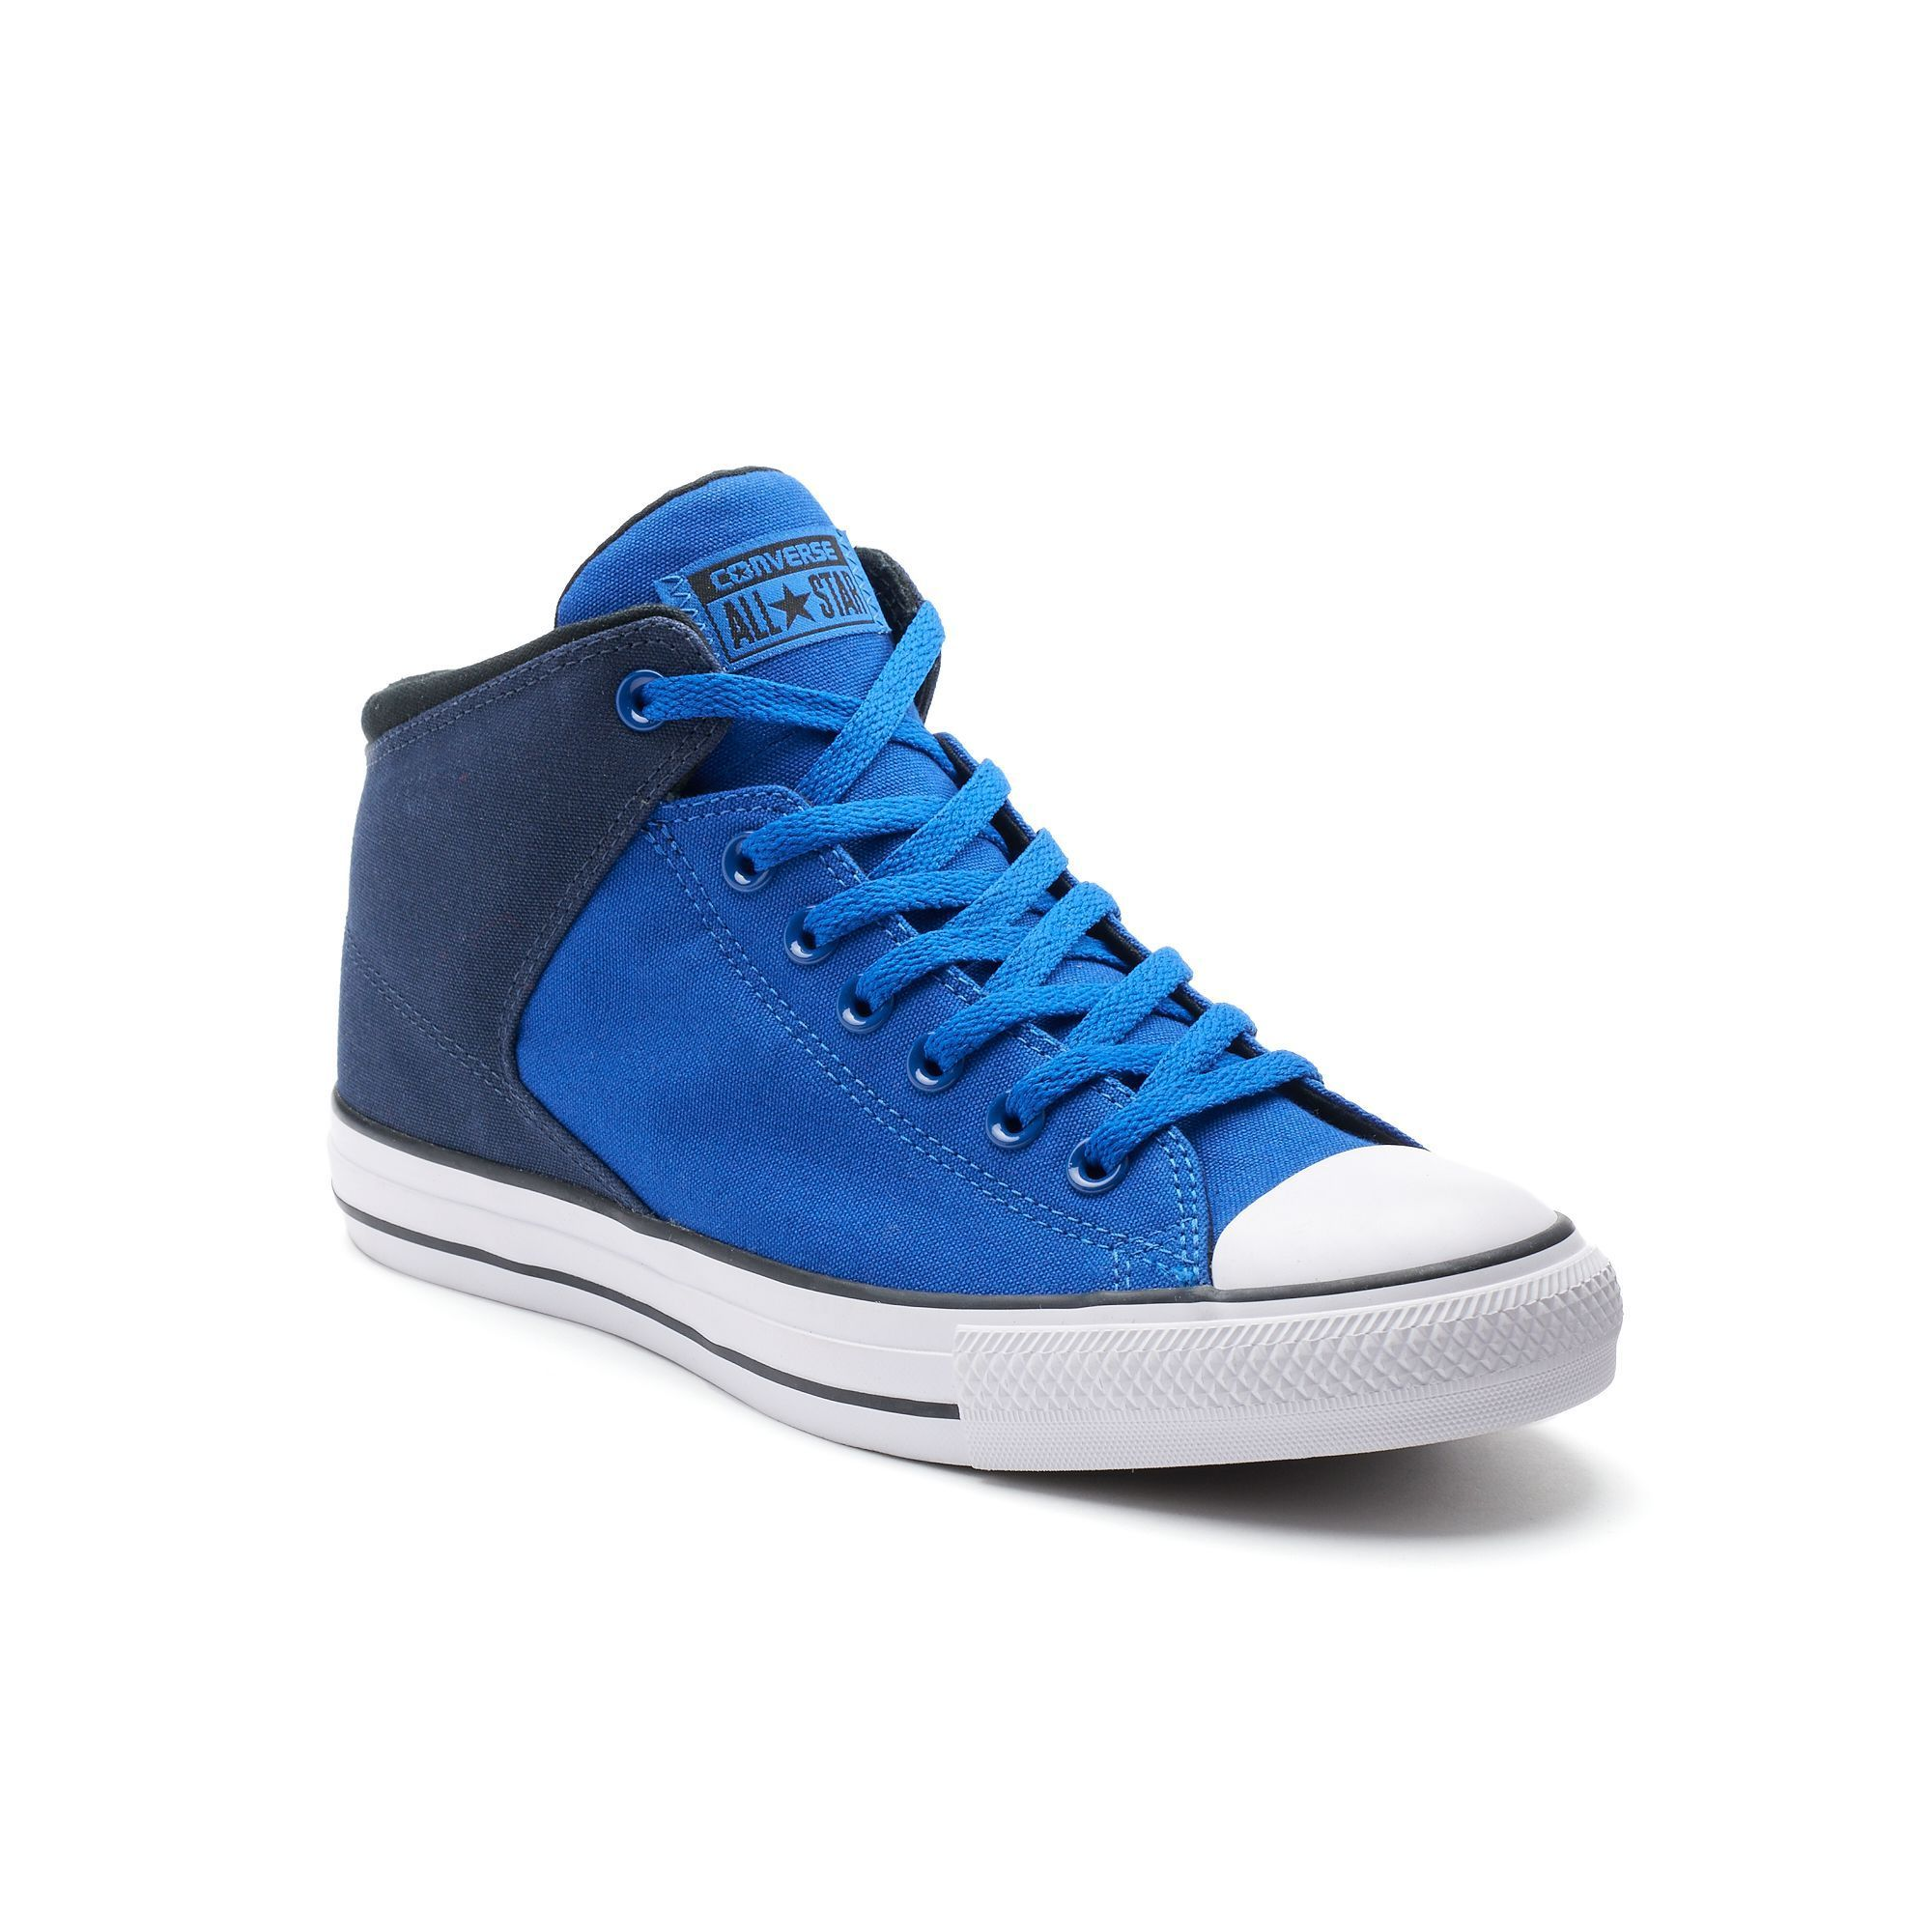 2b6bb60bd84e8d Men s Converse Chuck Taylor All Star High Street High-Top Sneakers ...